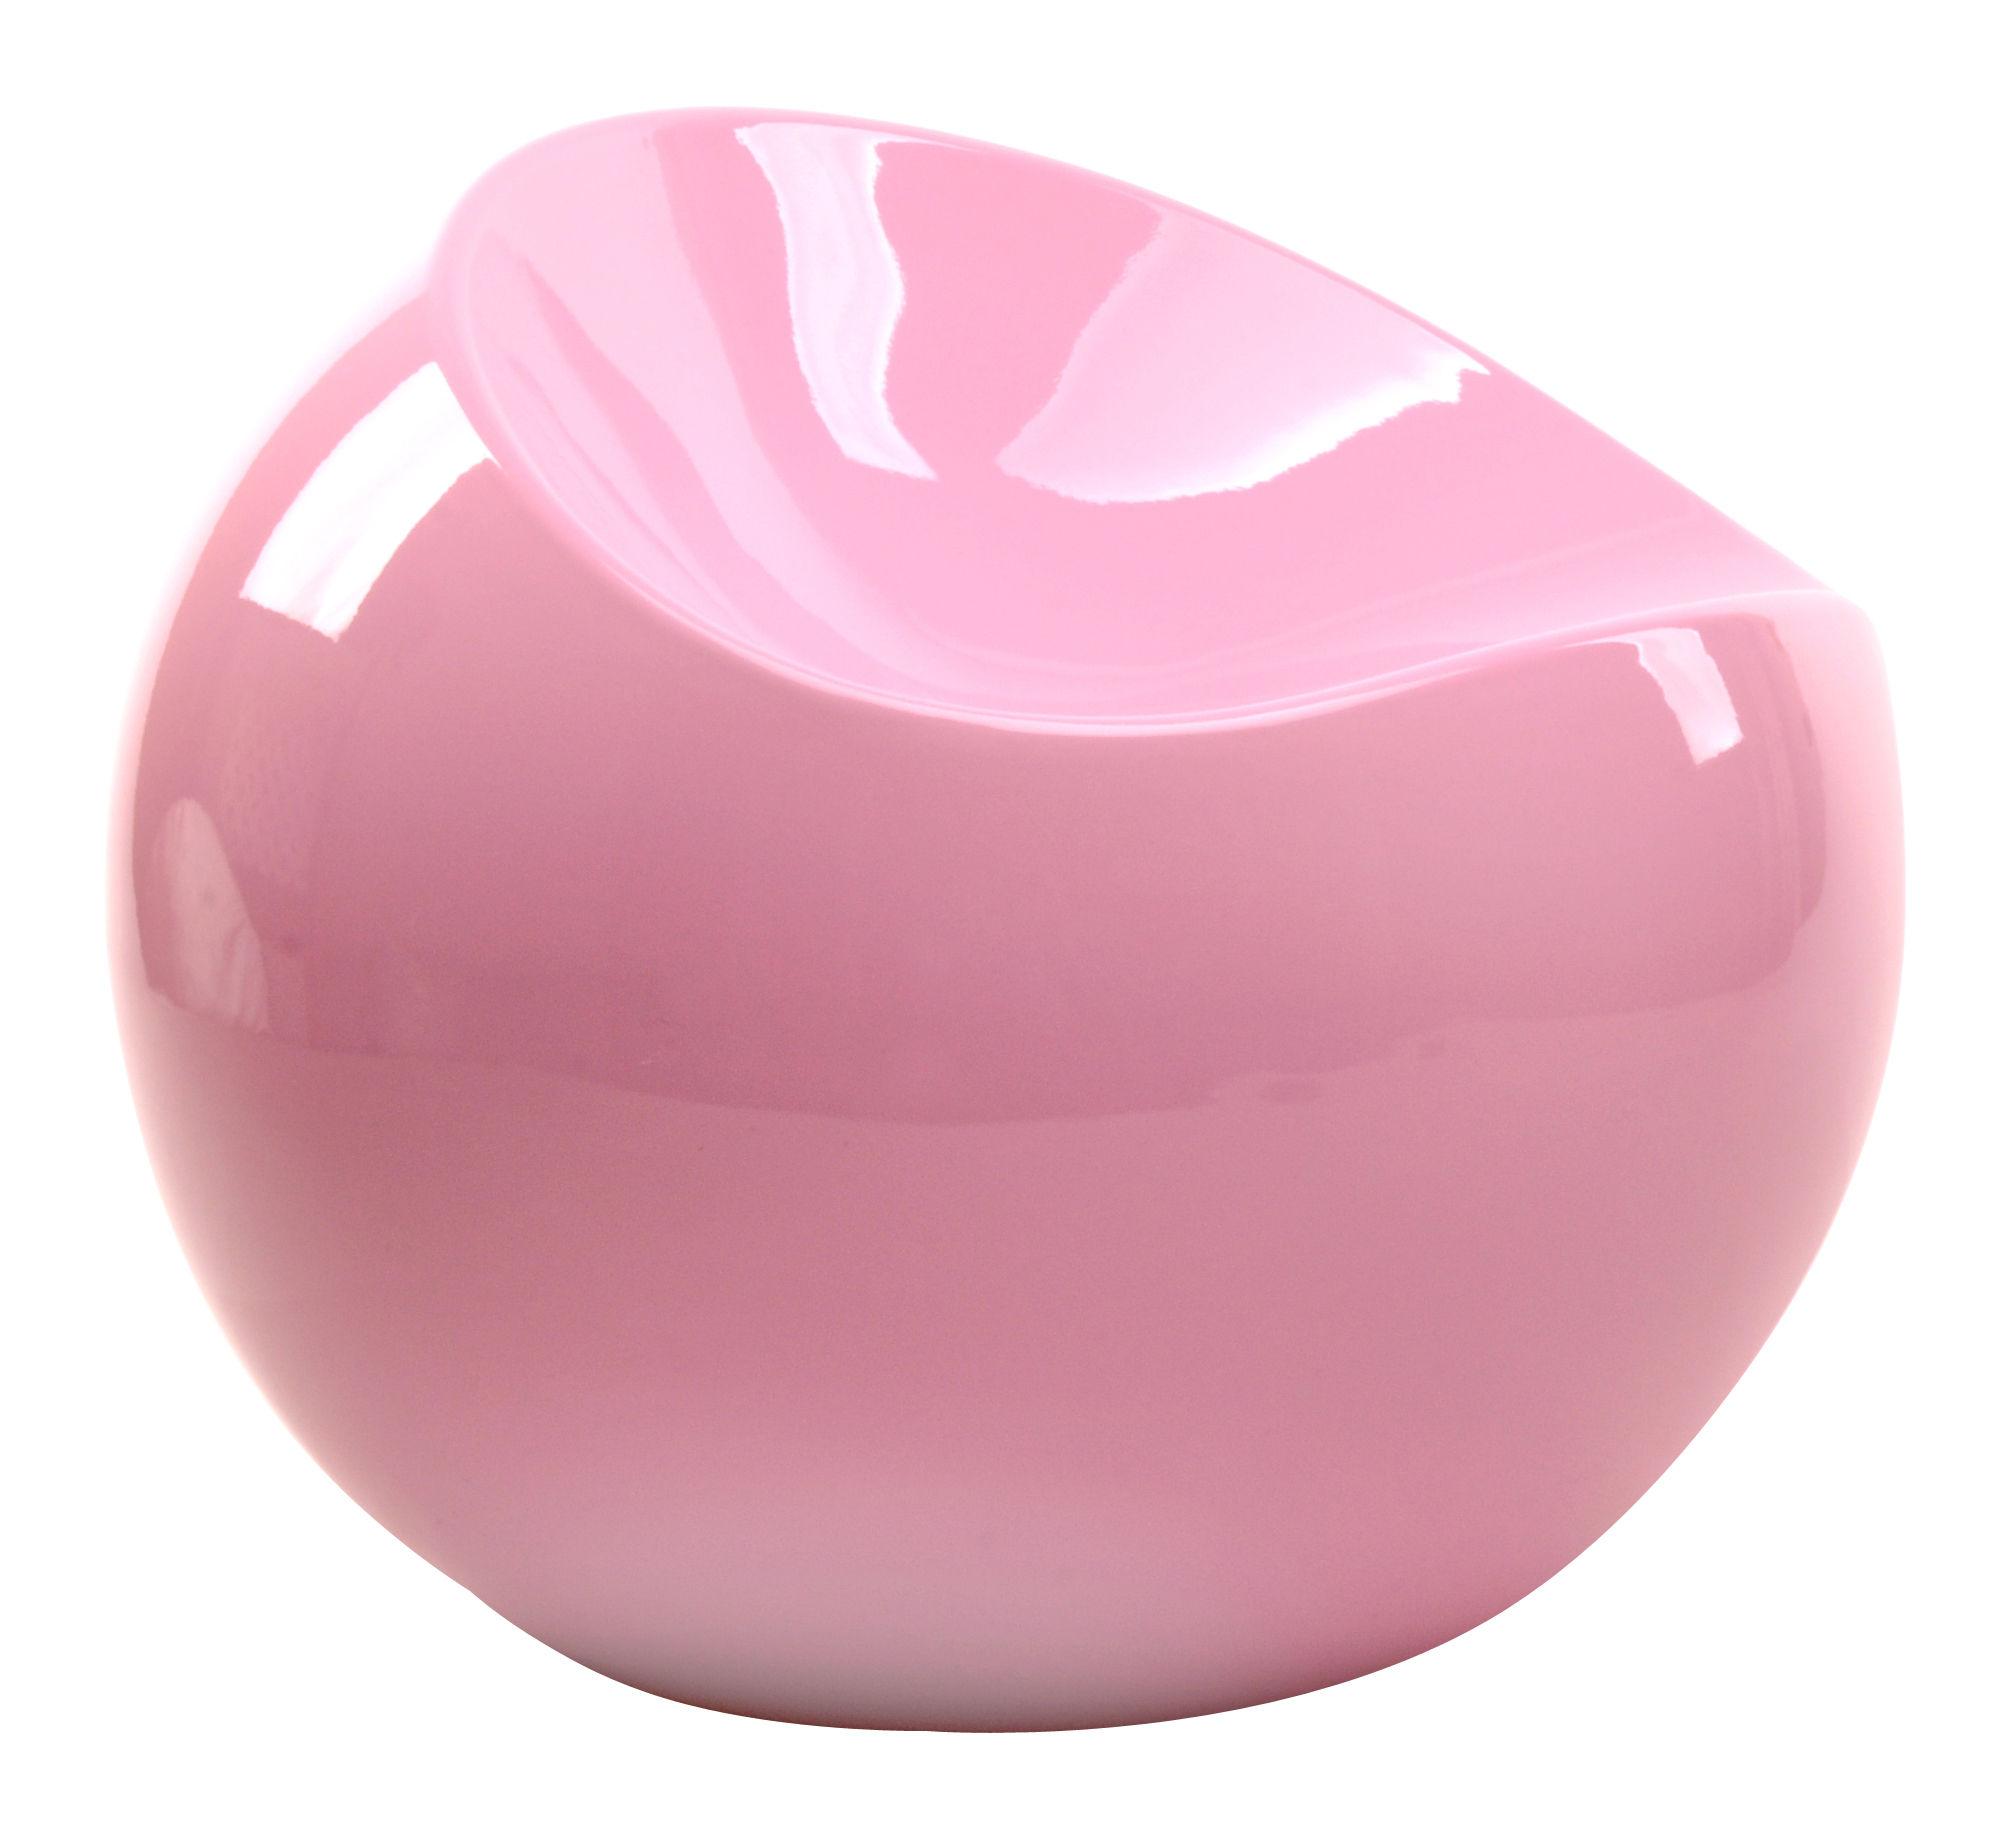 pouf ball chair exclusivit rose pastel xl boom. Black Bedroom Furniture Sets. Home Design Ideas